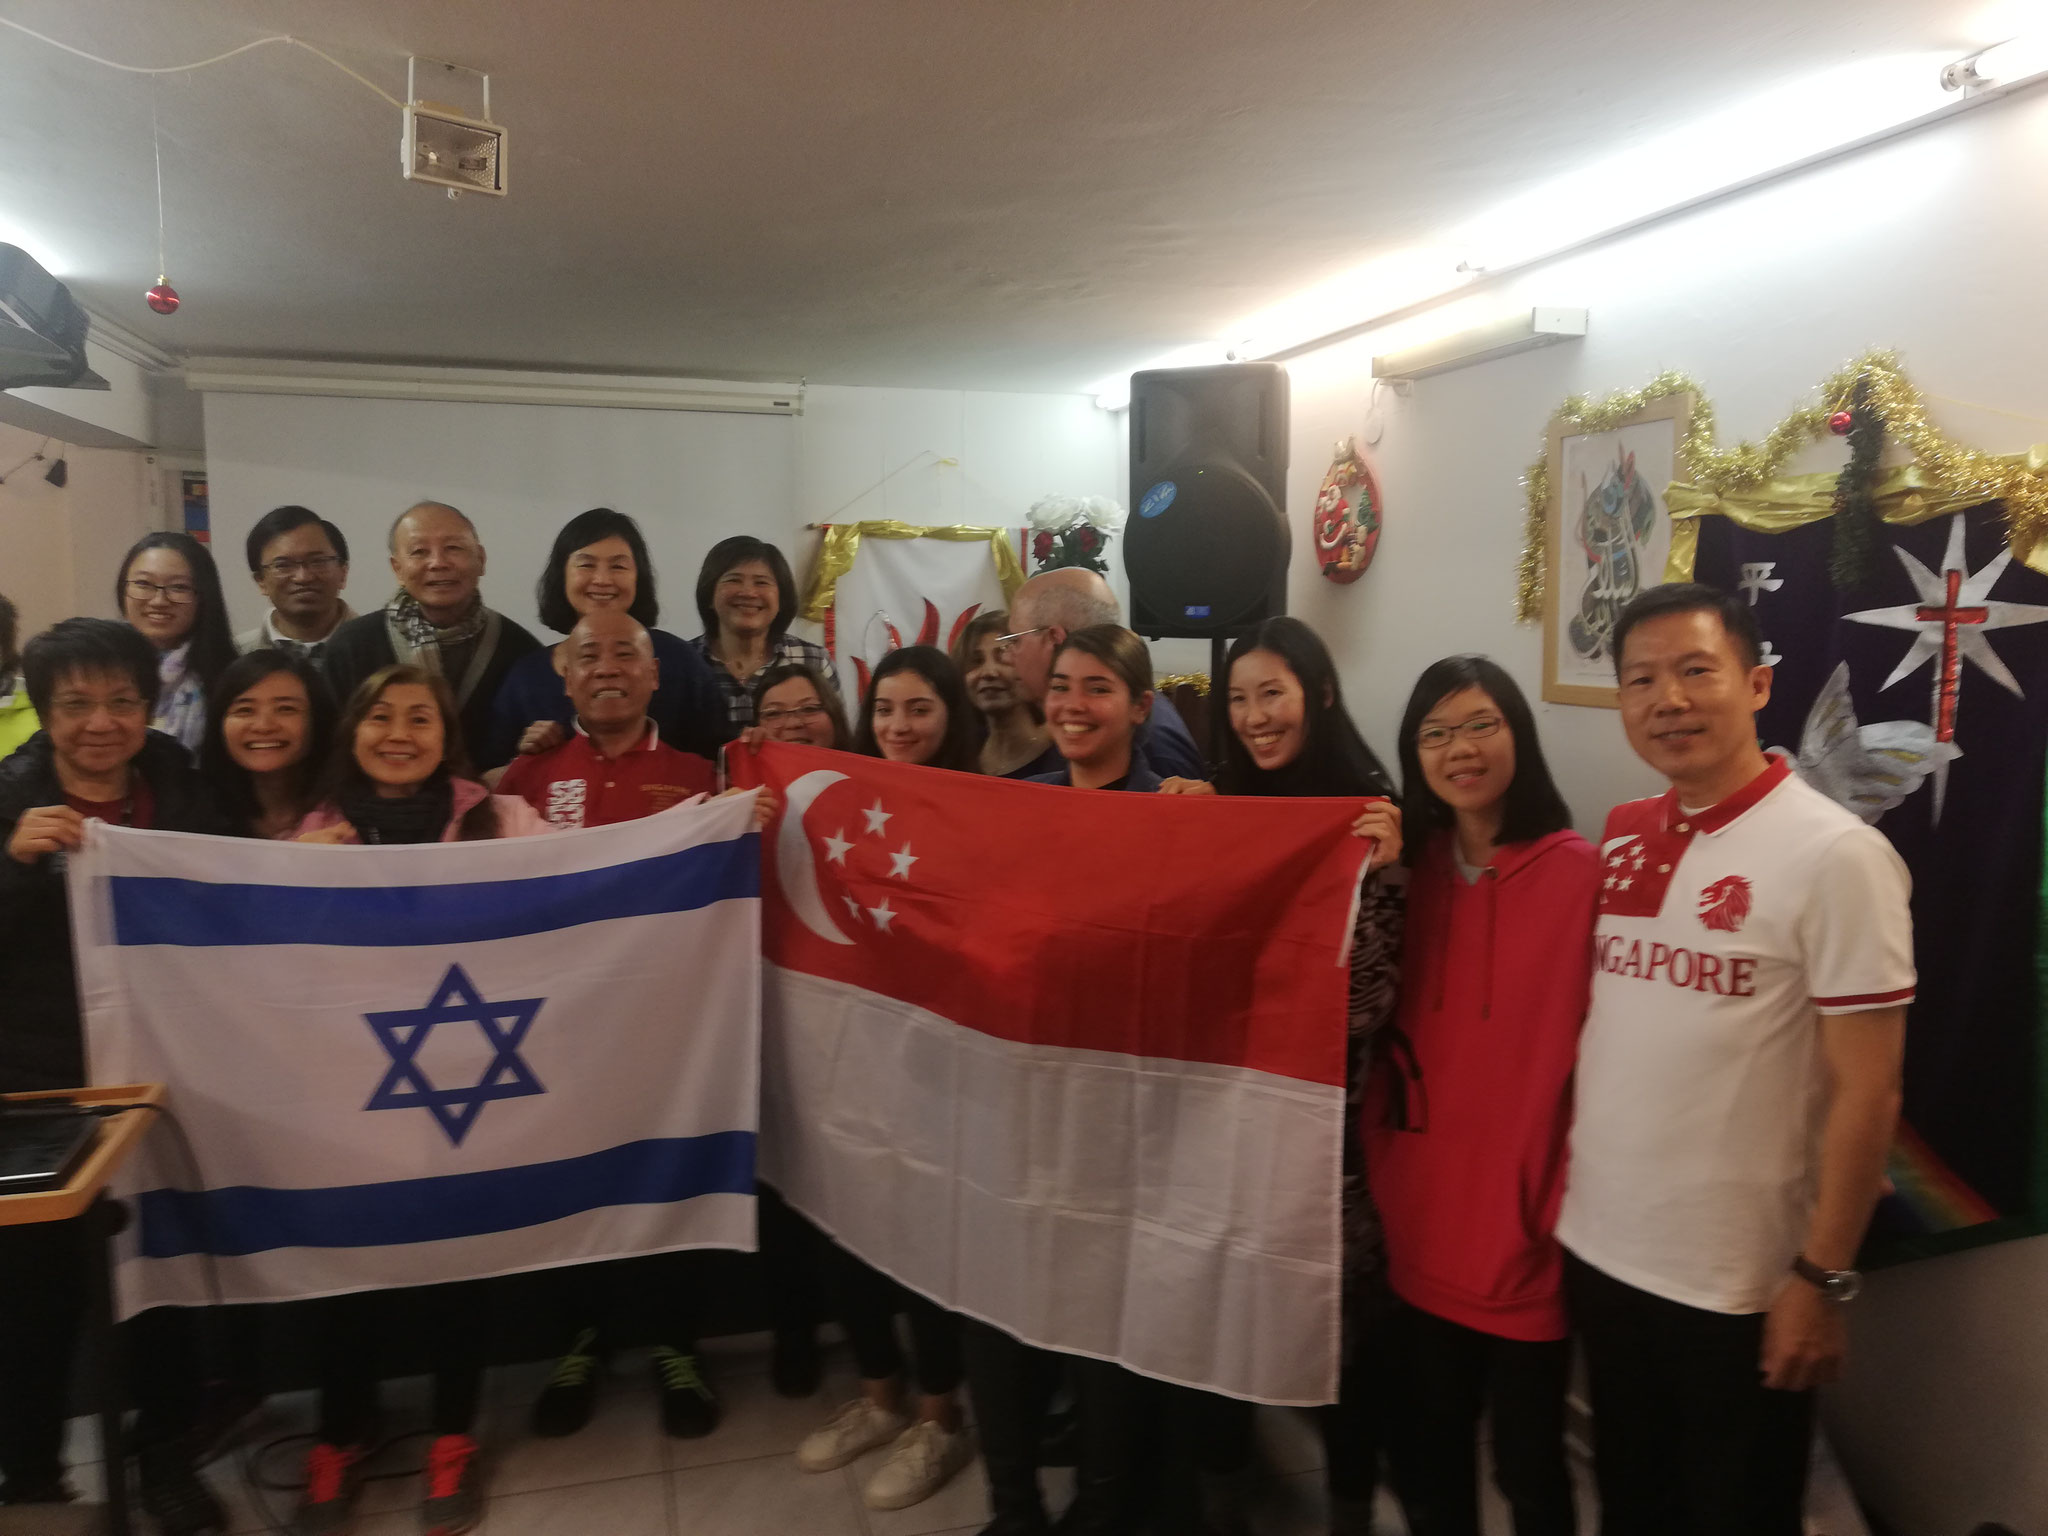 Friends forever! A group from Singapore in Israel, 2018